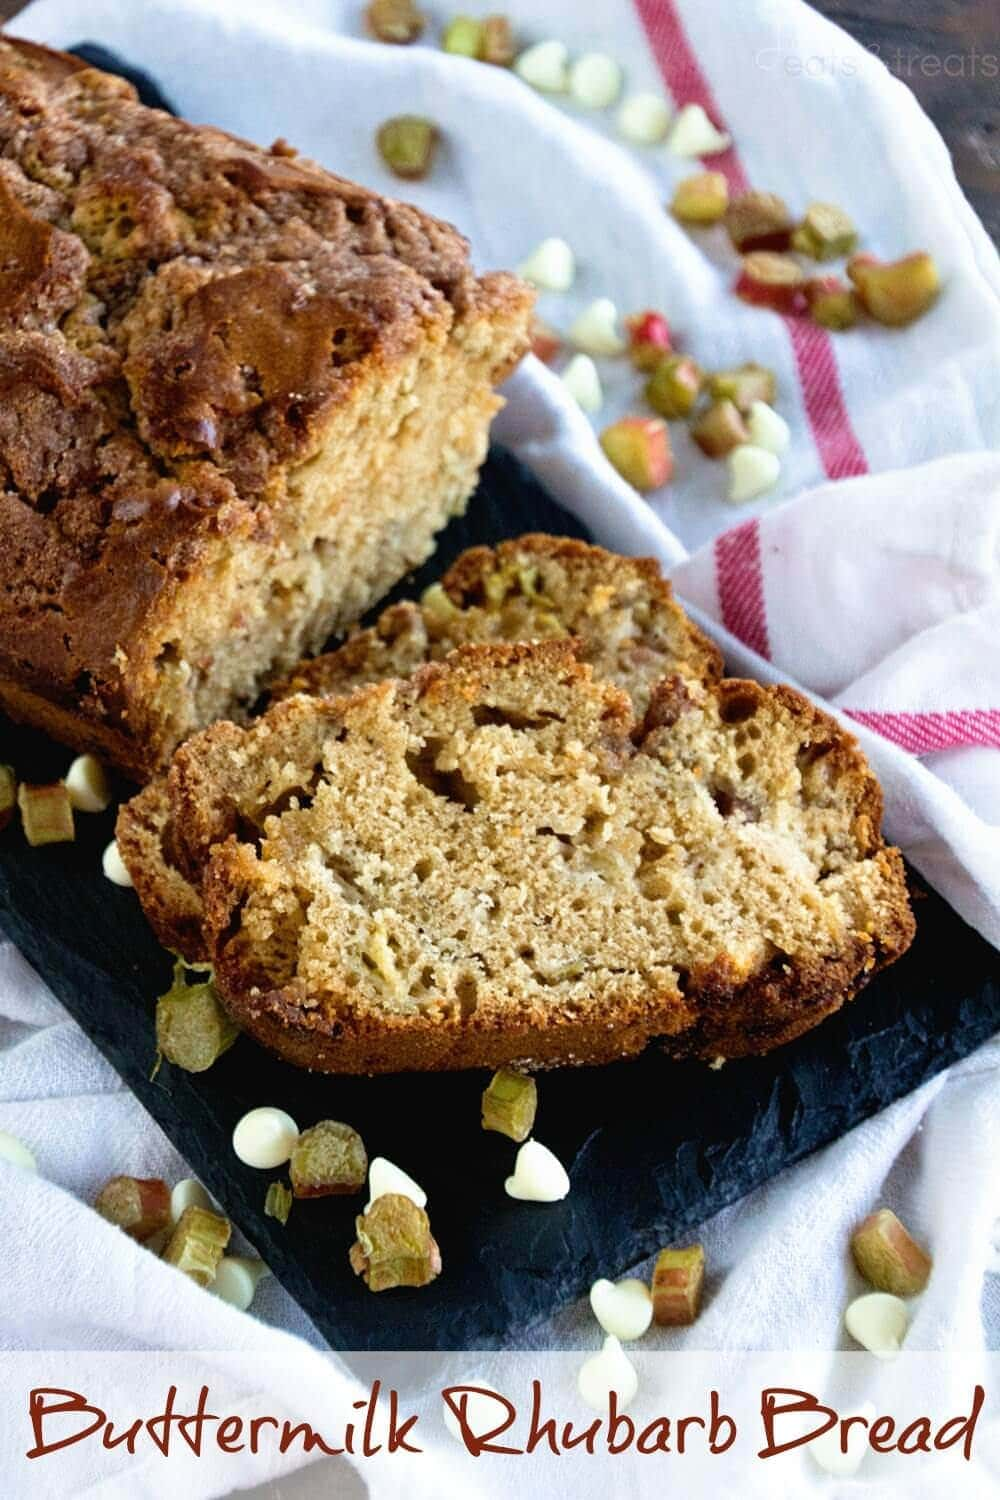 Buttermilk Rhubarb Bread ~ Quick, Easy Bread Recipe Loaded with Rhubarb and White Chocolate Chips!